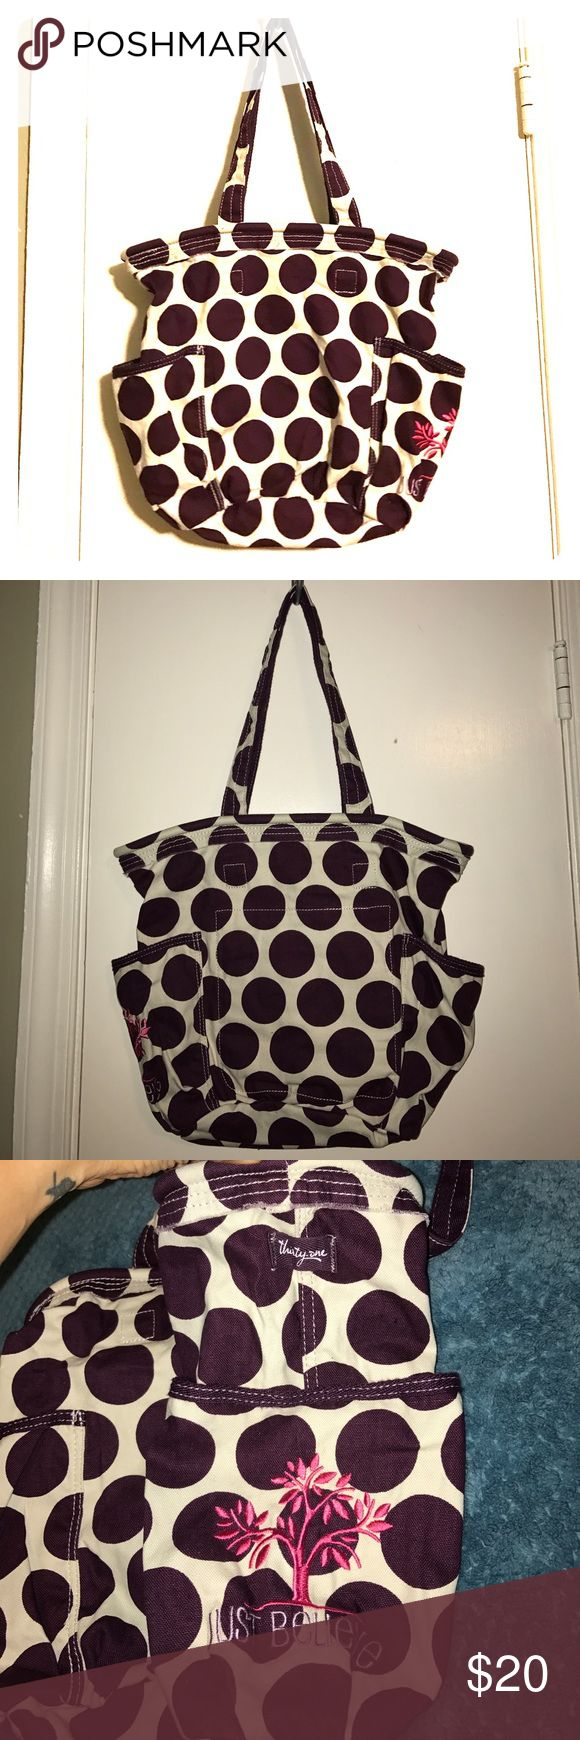 Retro Metro Tote 👜 in Maroon Mod Dot pattern NWOT NWOT Retro Metro Tote, off White with maroon Mod dots. Two outer pockets, two inner pockets and one zipper pocket. Has a clip to attach keys. last picture shows you the style, it's supposed to have the frayed look. Bundle and save, open to reasonable offers. Comes from a smoke free 🐶 friendly home. Let me know if you have any questions. Thirty-One Bags Shoulder Bags